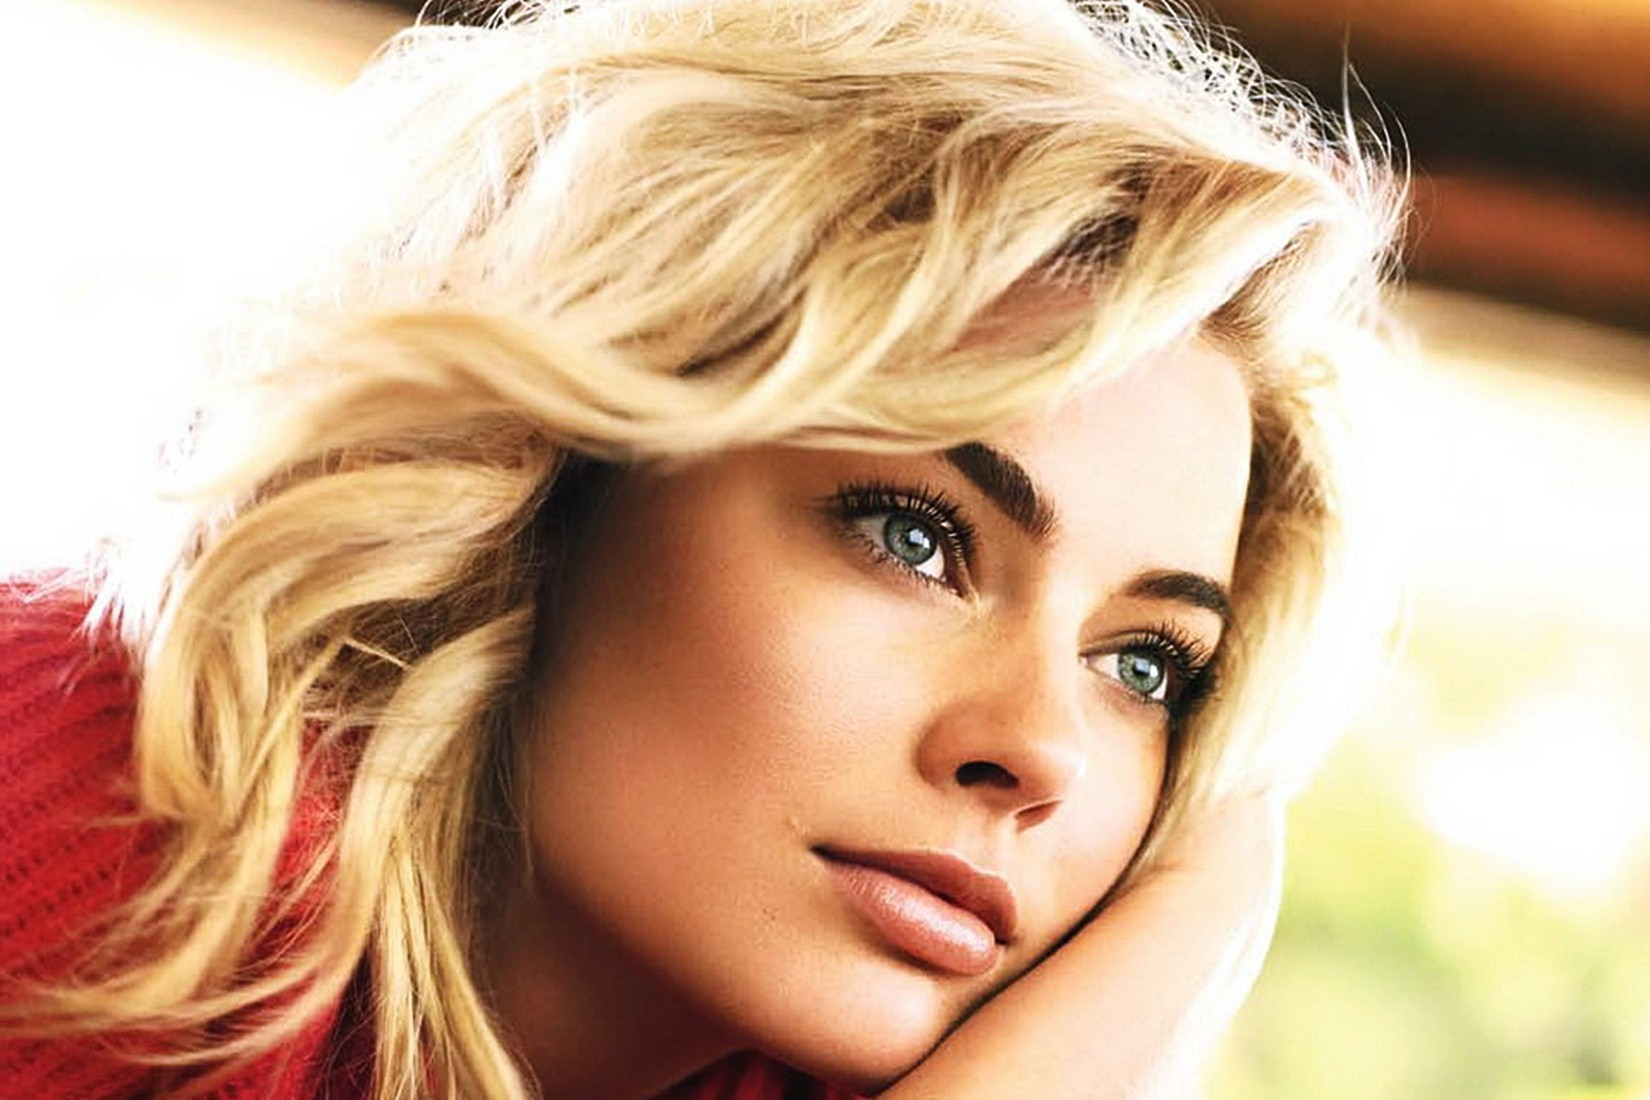 1650x1100 Margot Robbie Wallpapers HD Backgrounds, Images, Pics, Photos Free ...